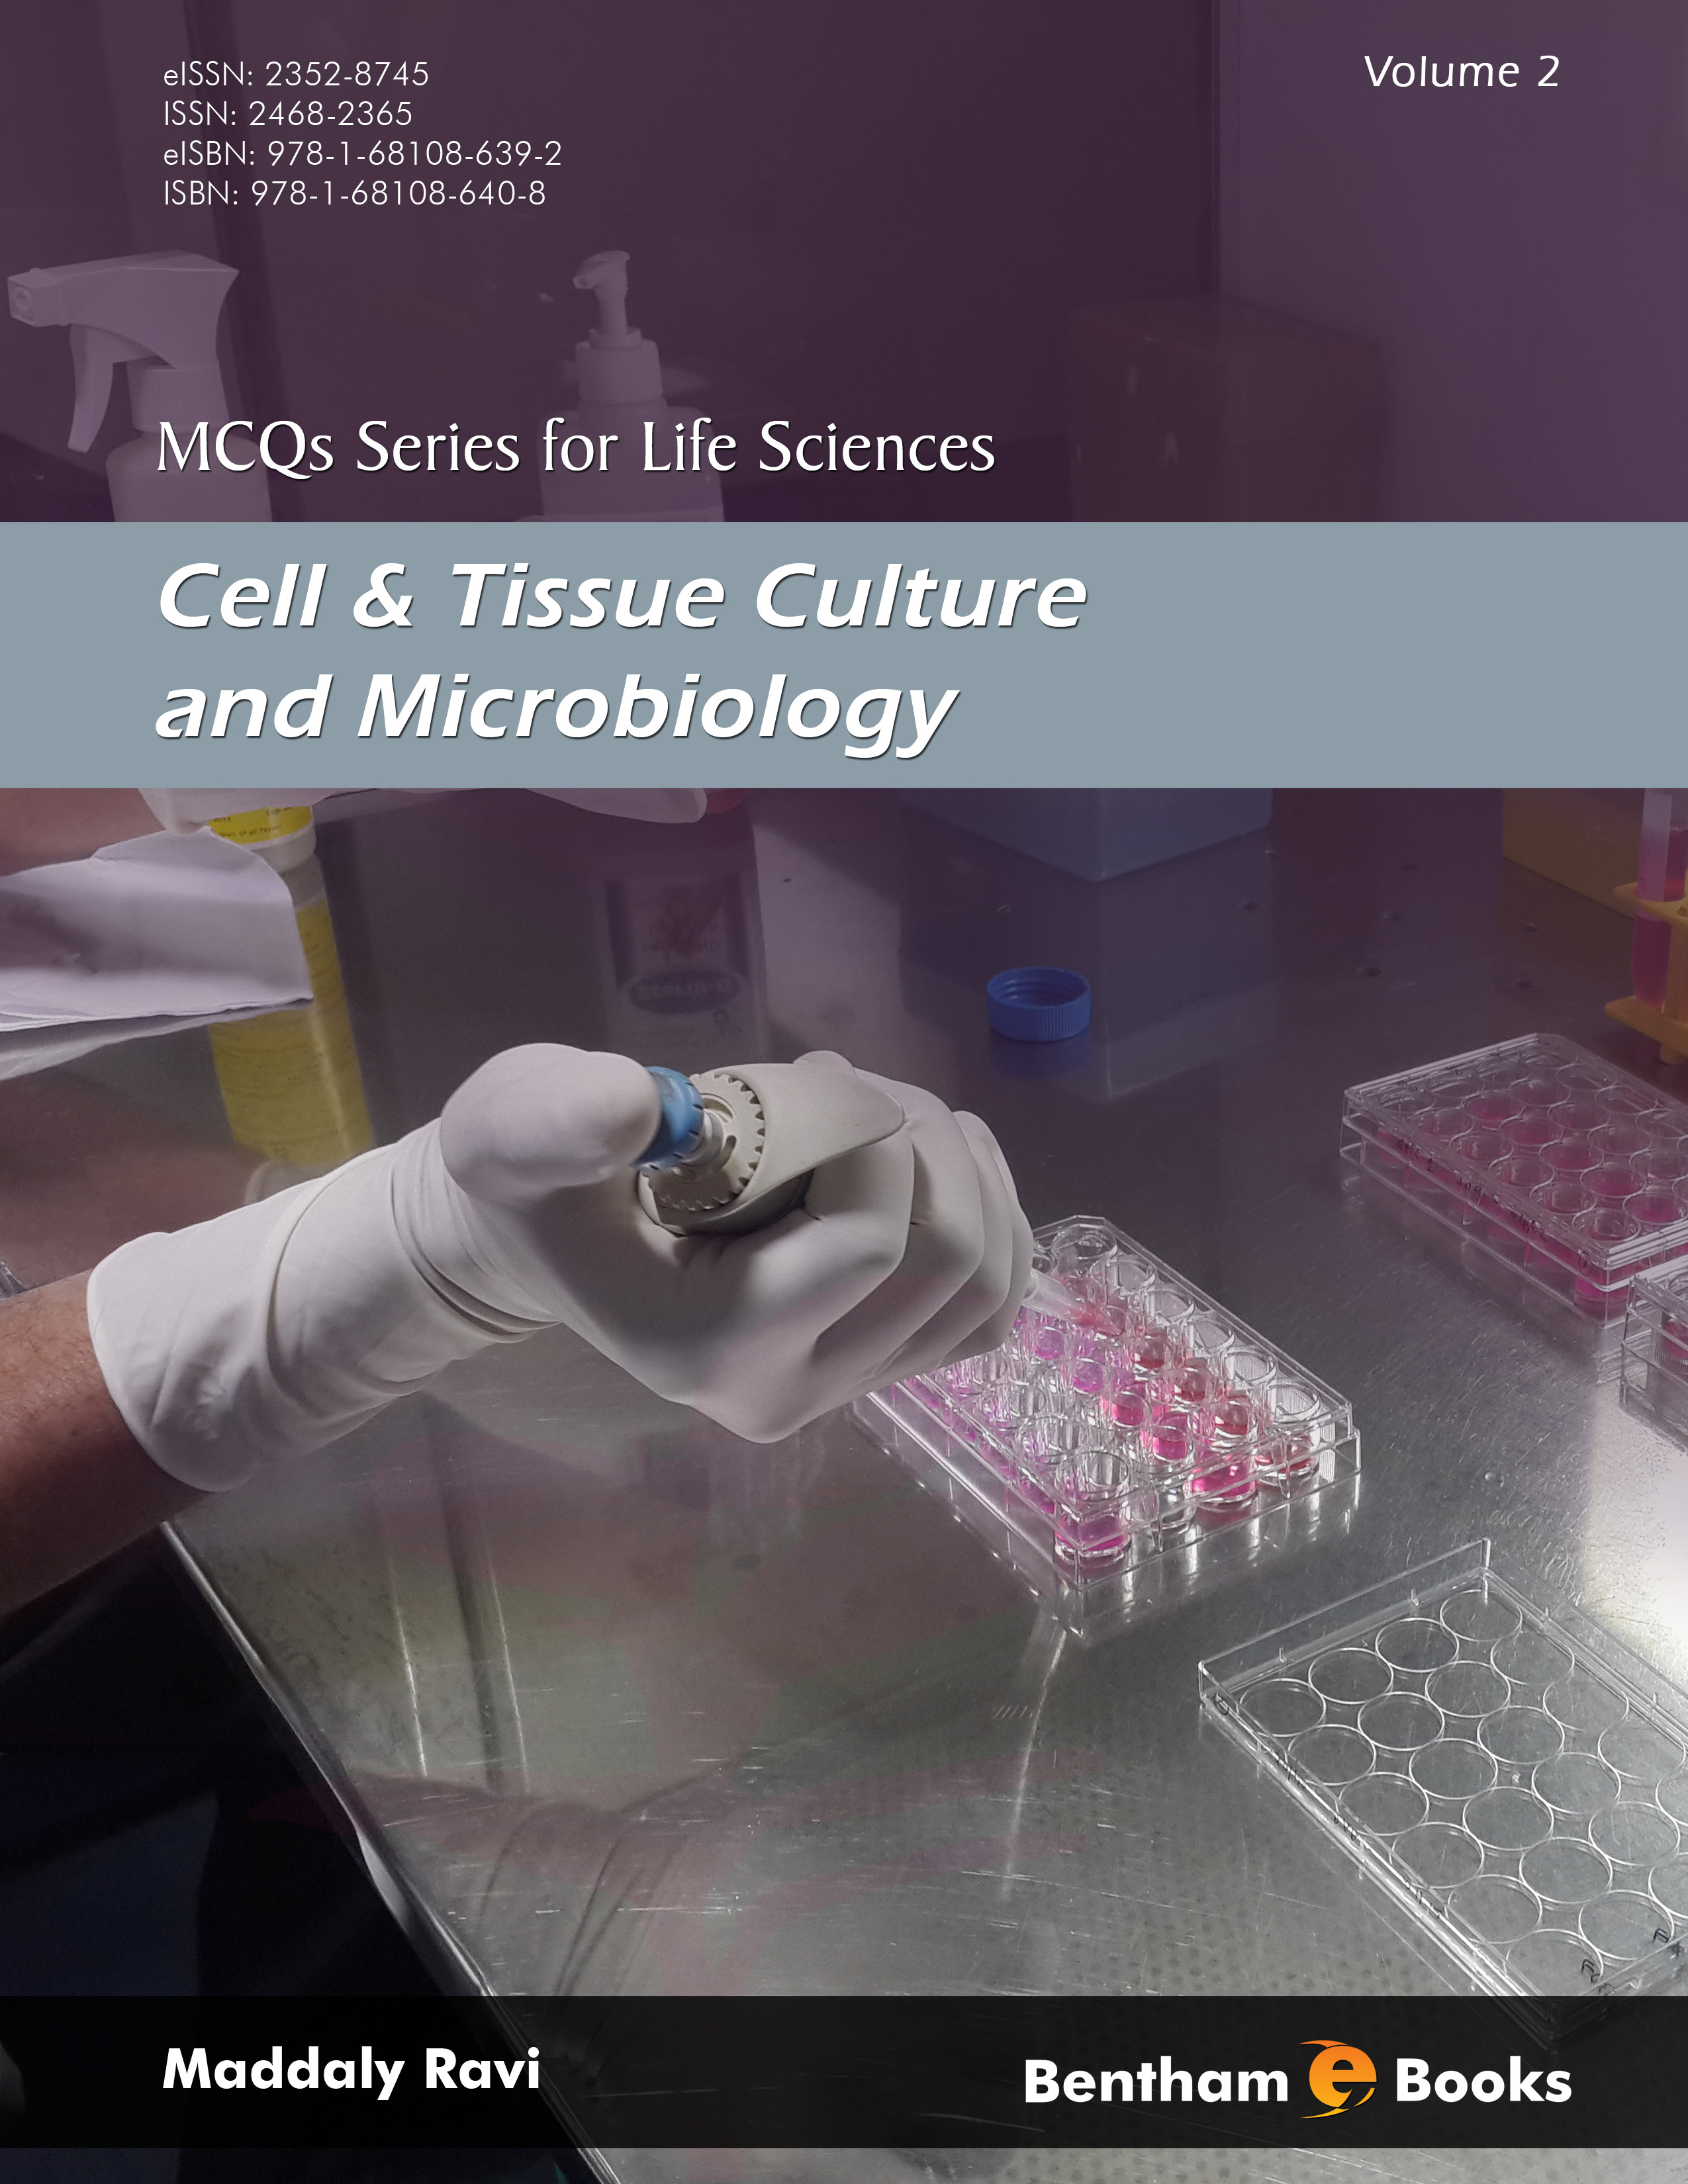 MCQs Series for Life Sciences